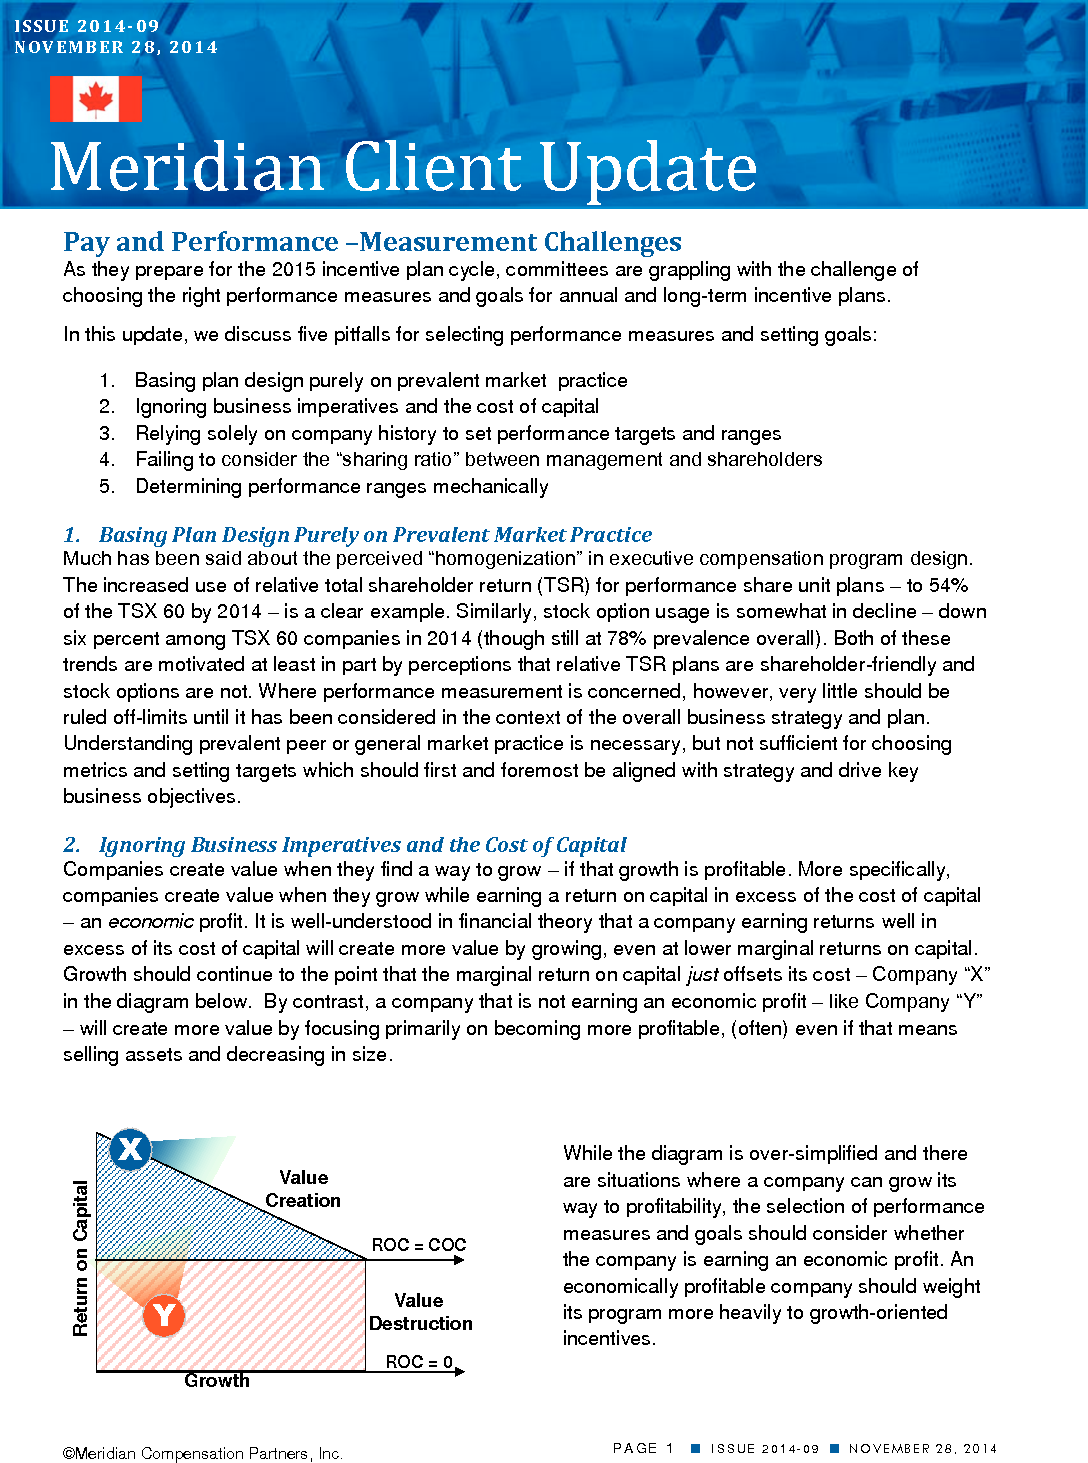 Measurement Challenges for Pay and Performance (PDF)